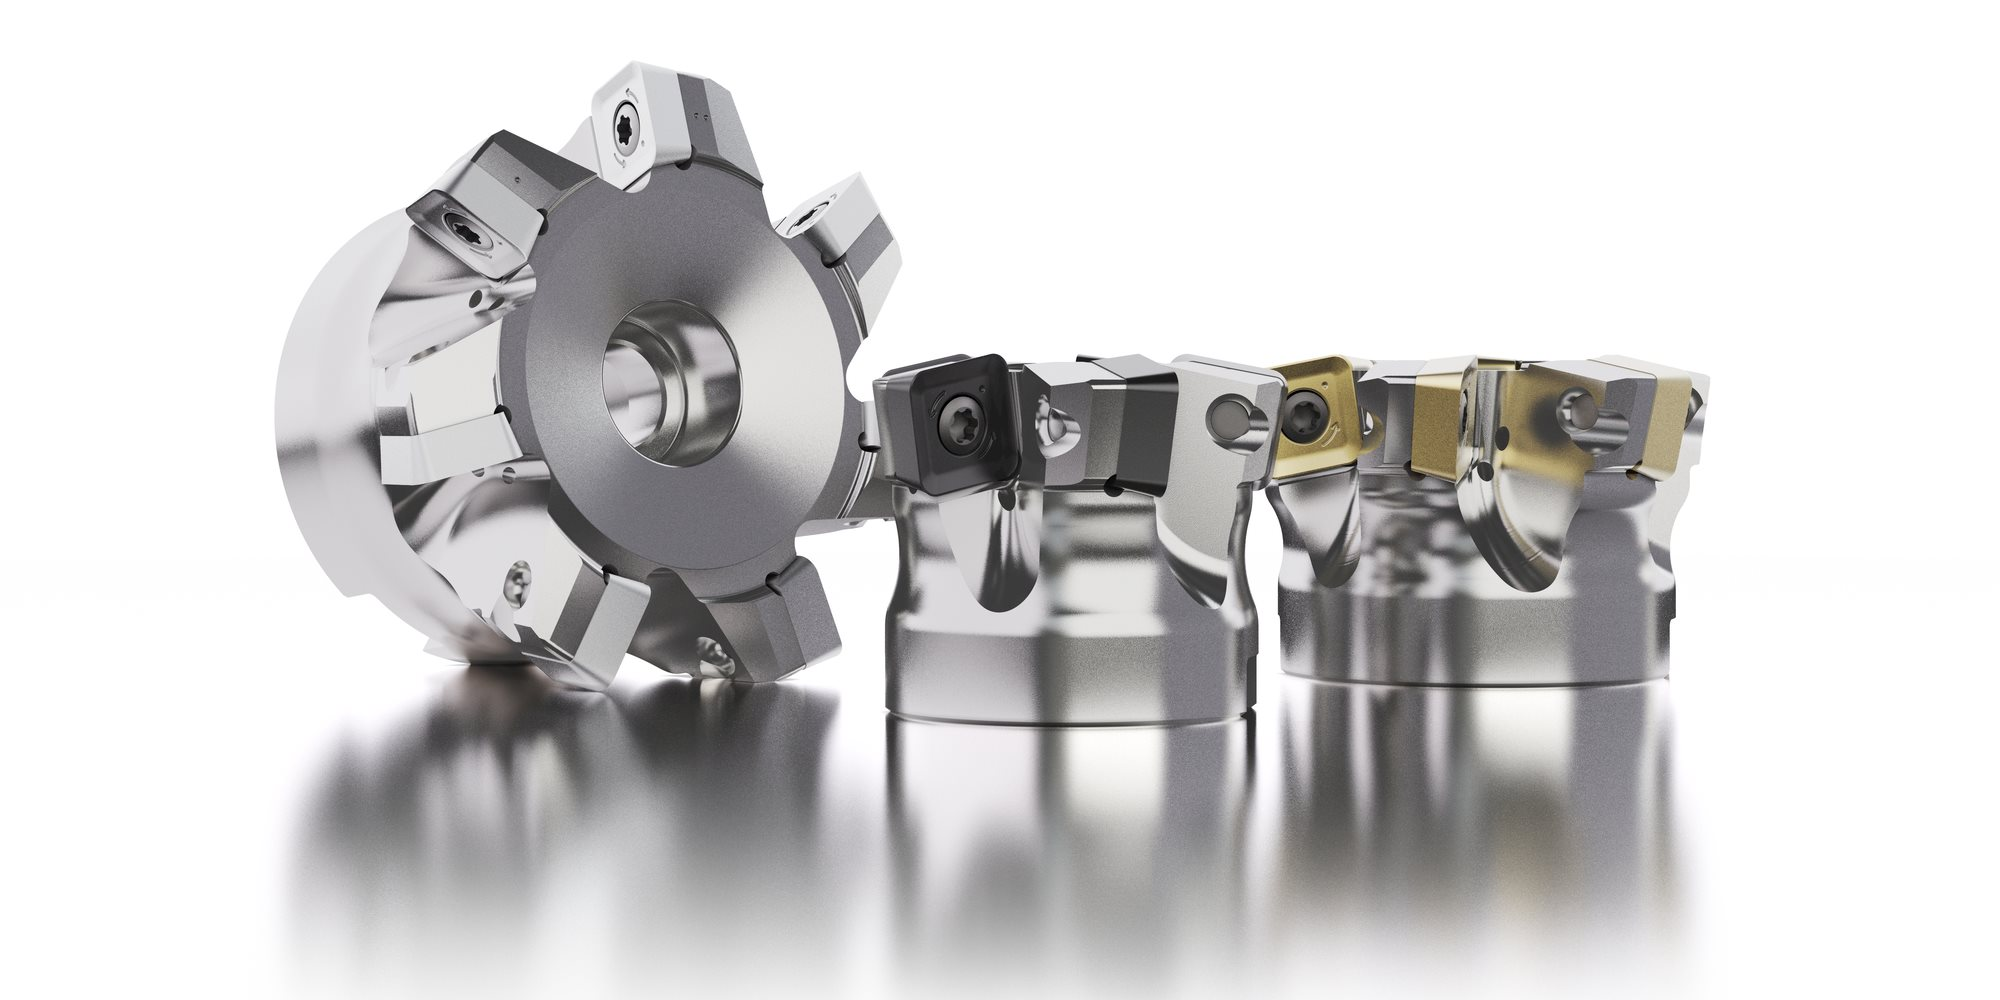 Milling Cutters Group Photo.tif